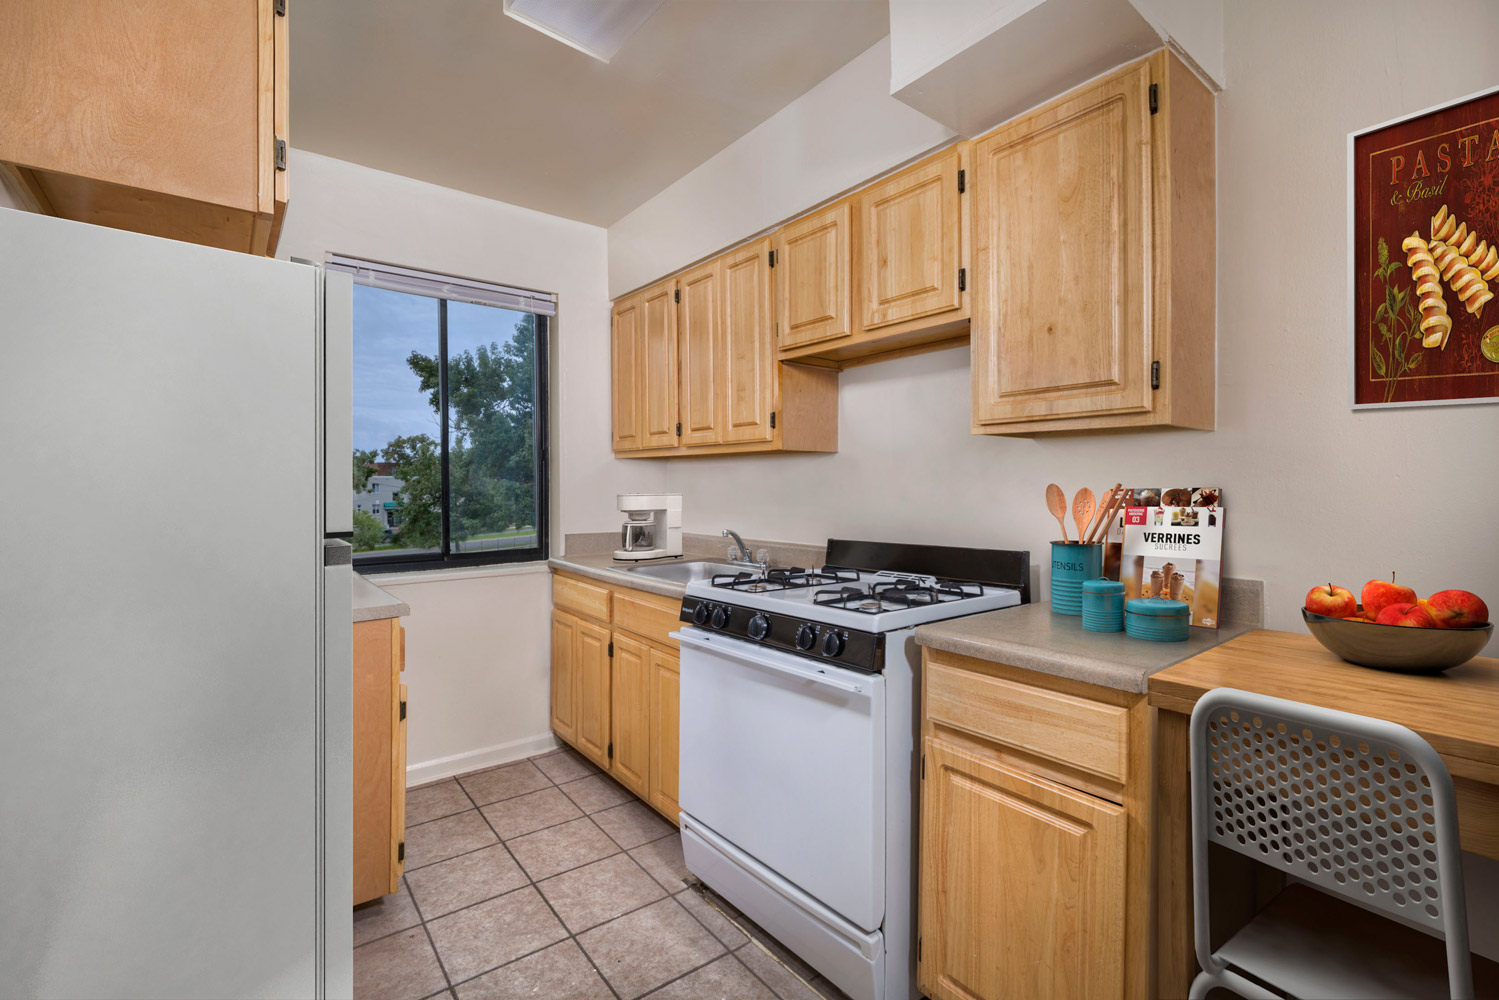 Kitchen with gas range at Liberty Place Apartments in Langley Park, MD